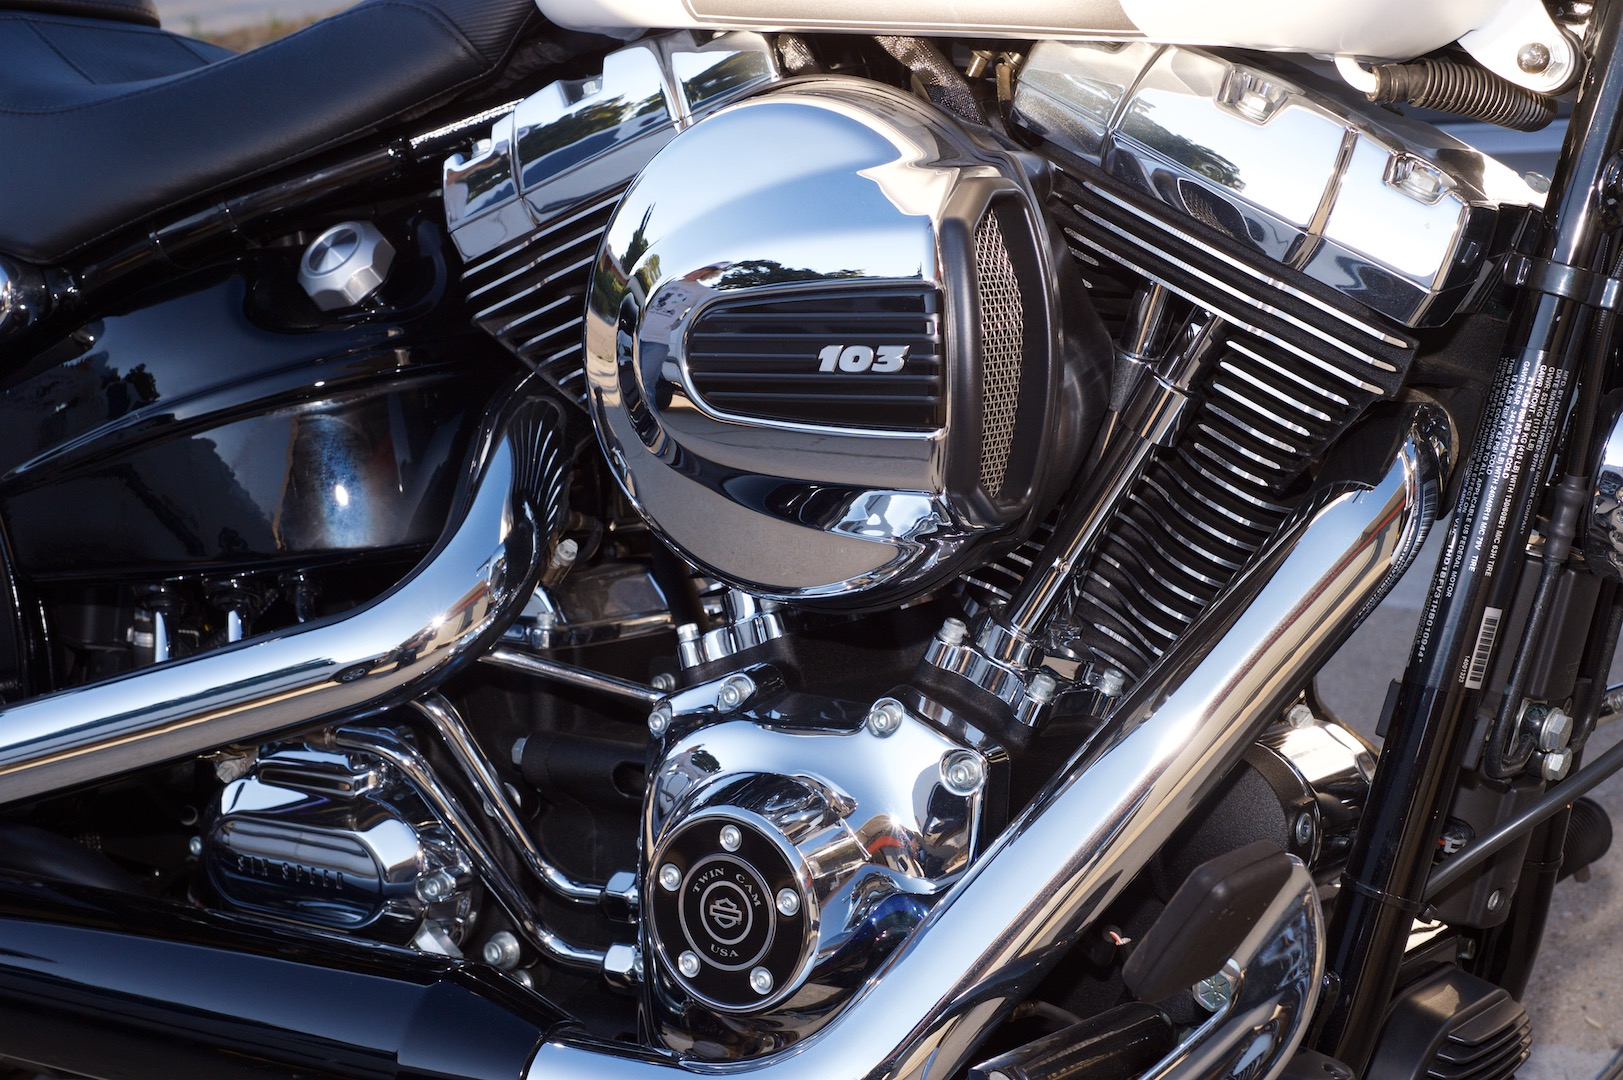 2017 Harley Davidson Softail Breakout Review Go Straight